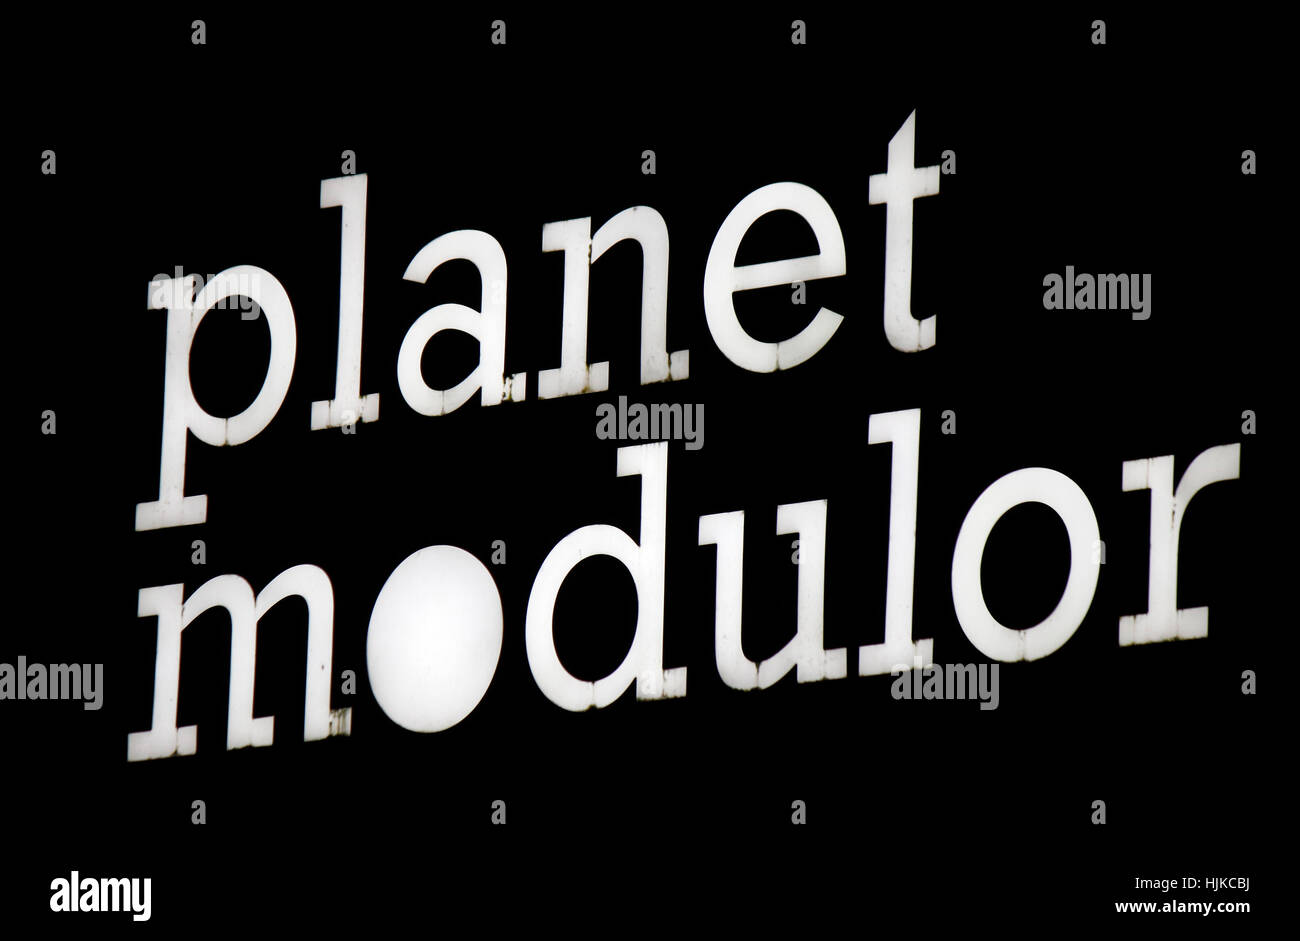 das Logo der Marke 'Planet Modulor', Berlin. - Stock Image